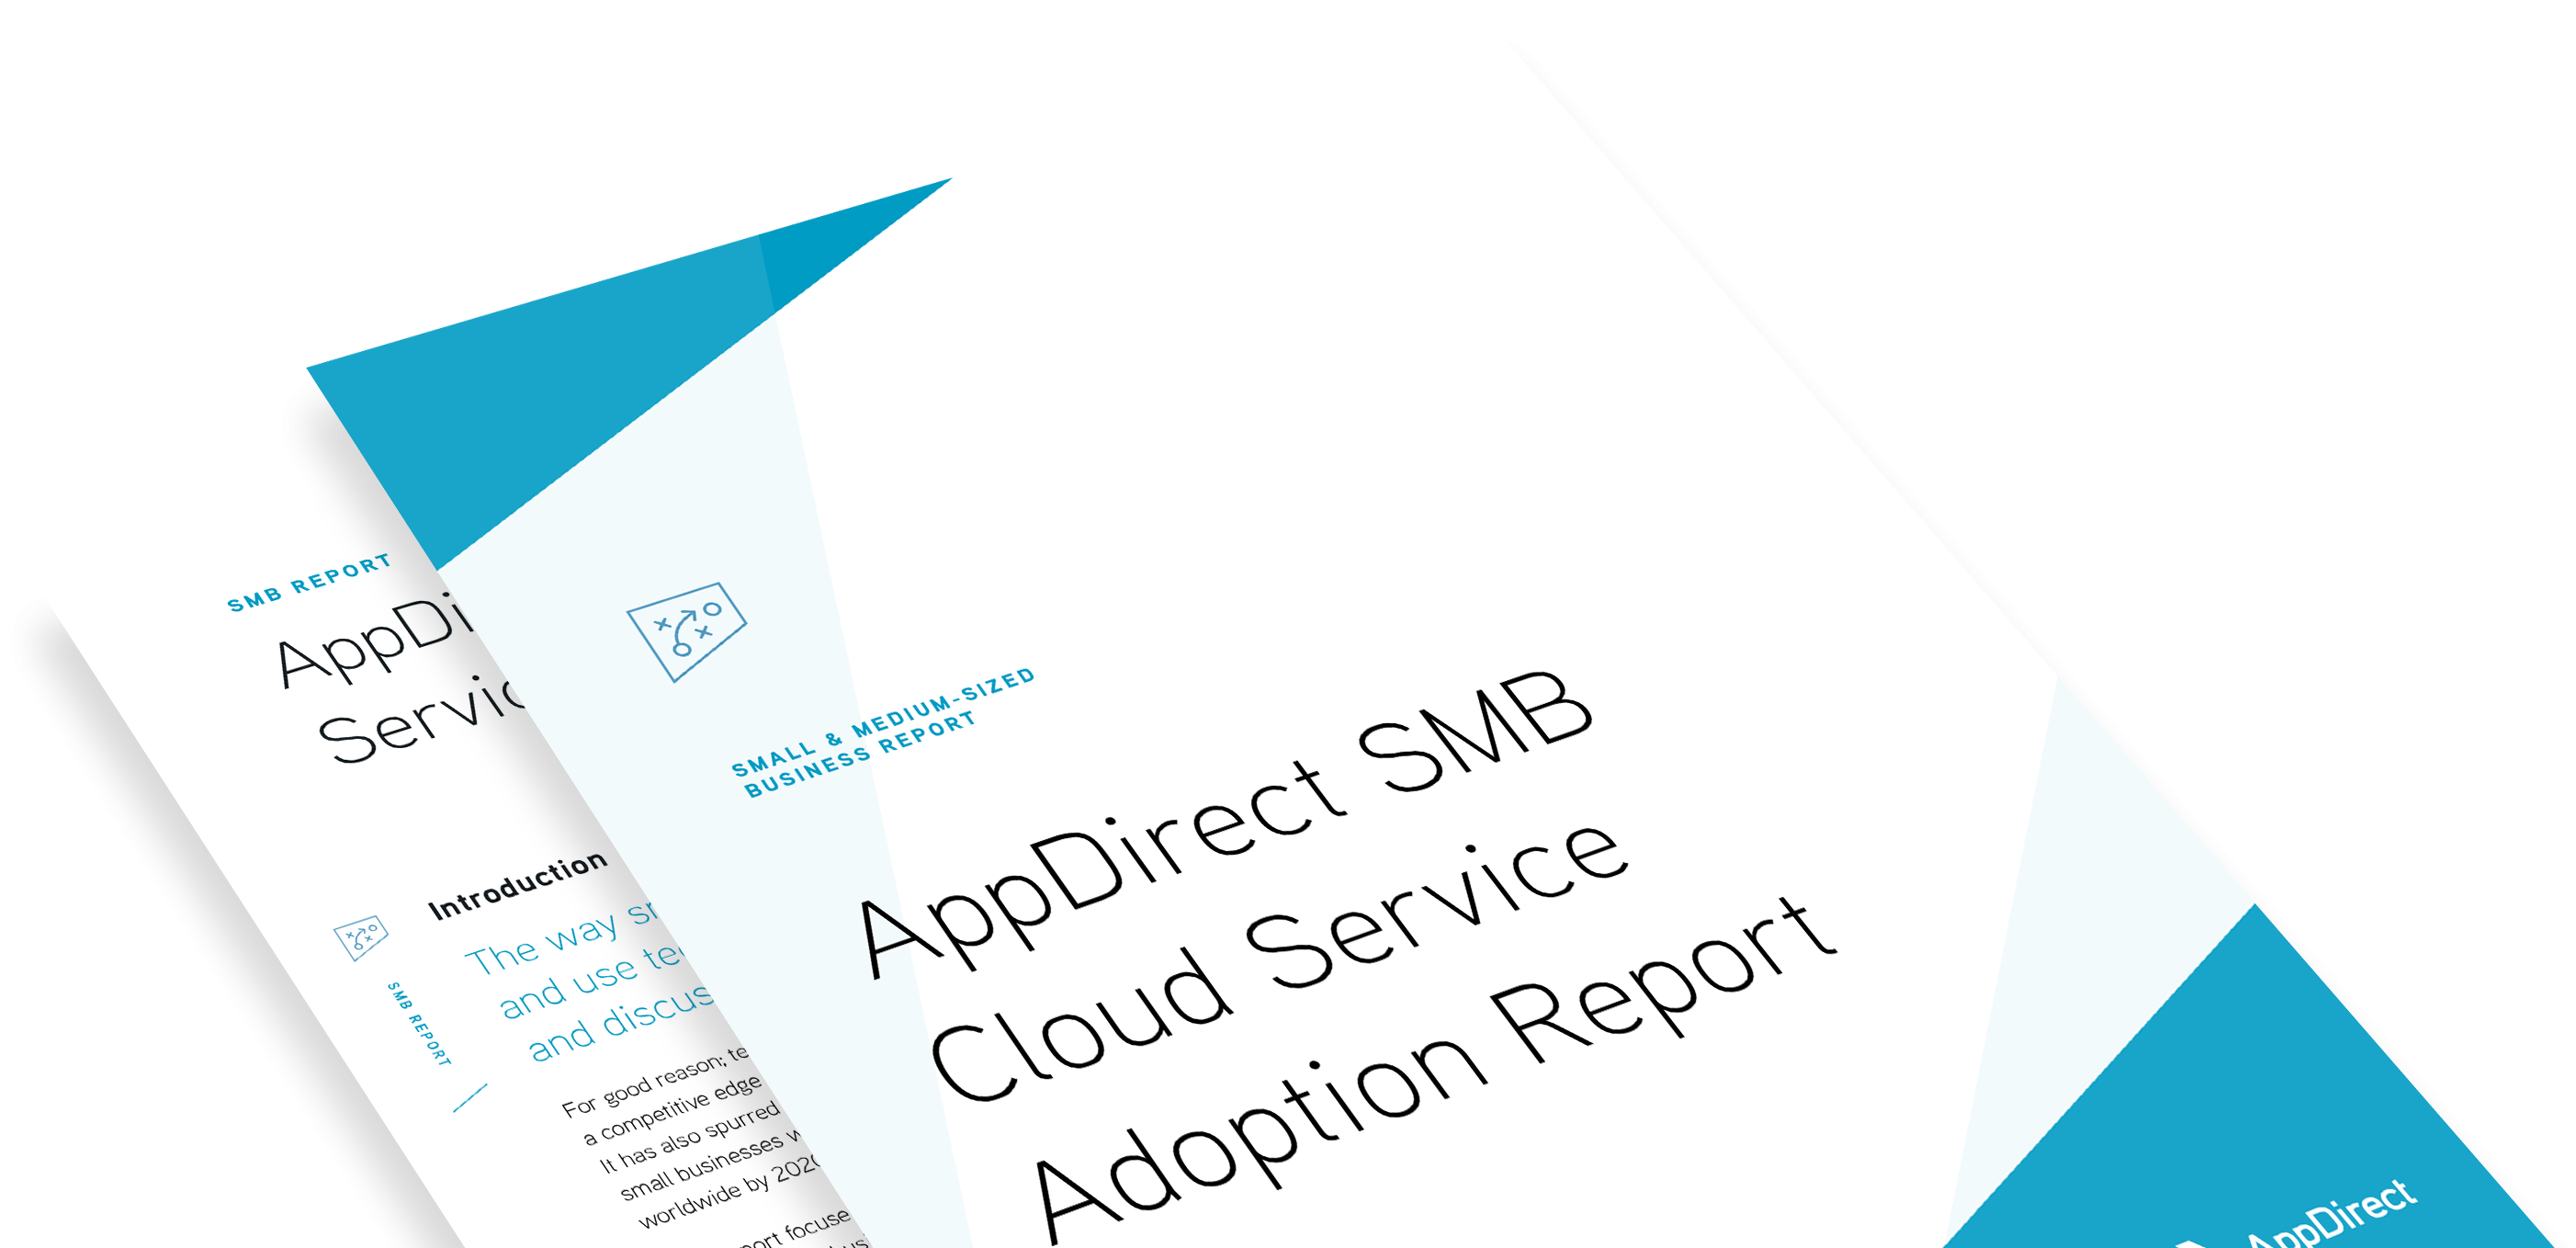 SMB Cloud Service Adoption Survey Report